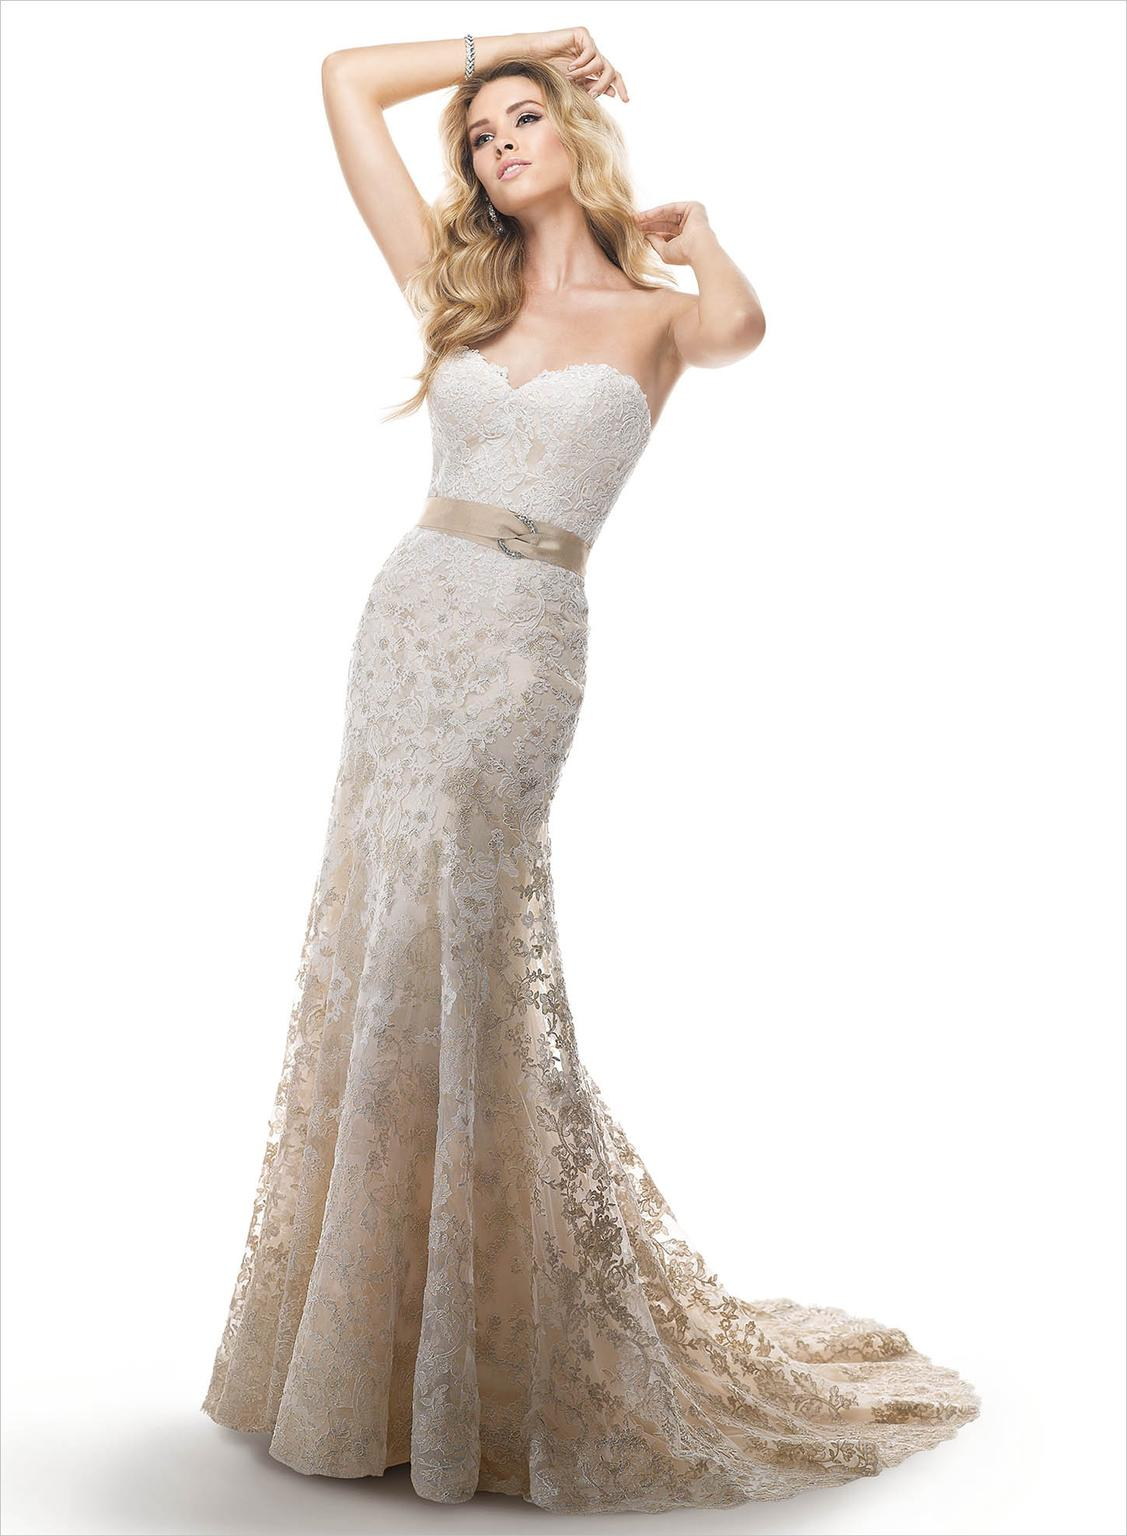 used maggie sottero wedding dresses photo - 1